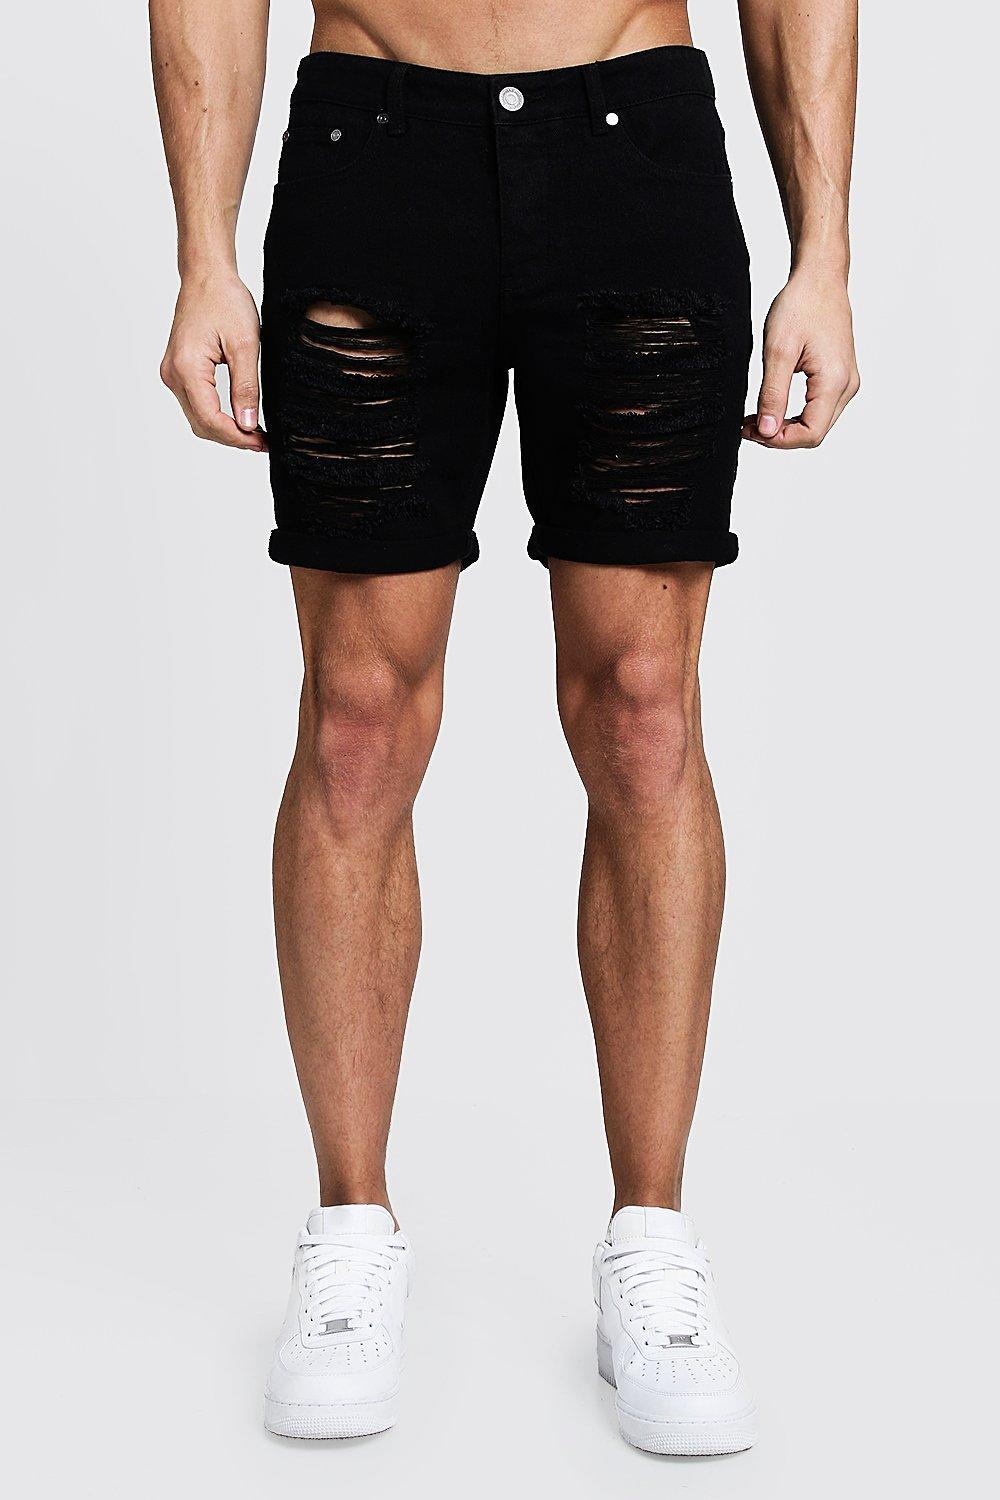 8daacbe4d9176 Lyst - BoohooMAN Slim Fit Distressed Denim Shorts in Black for Men